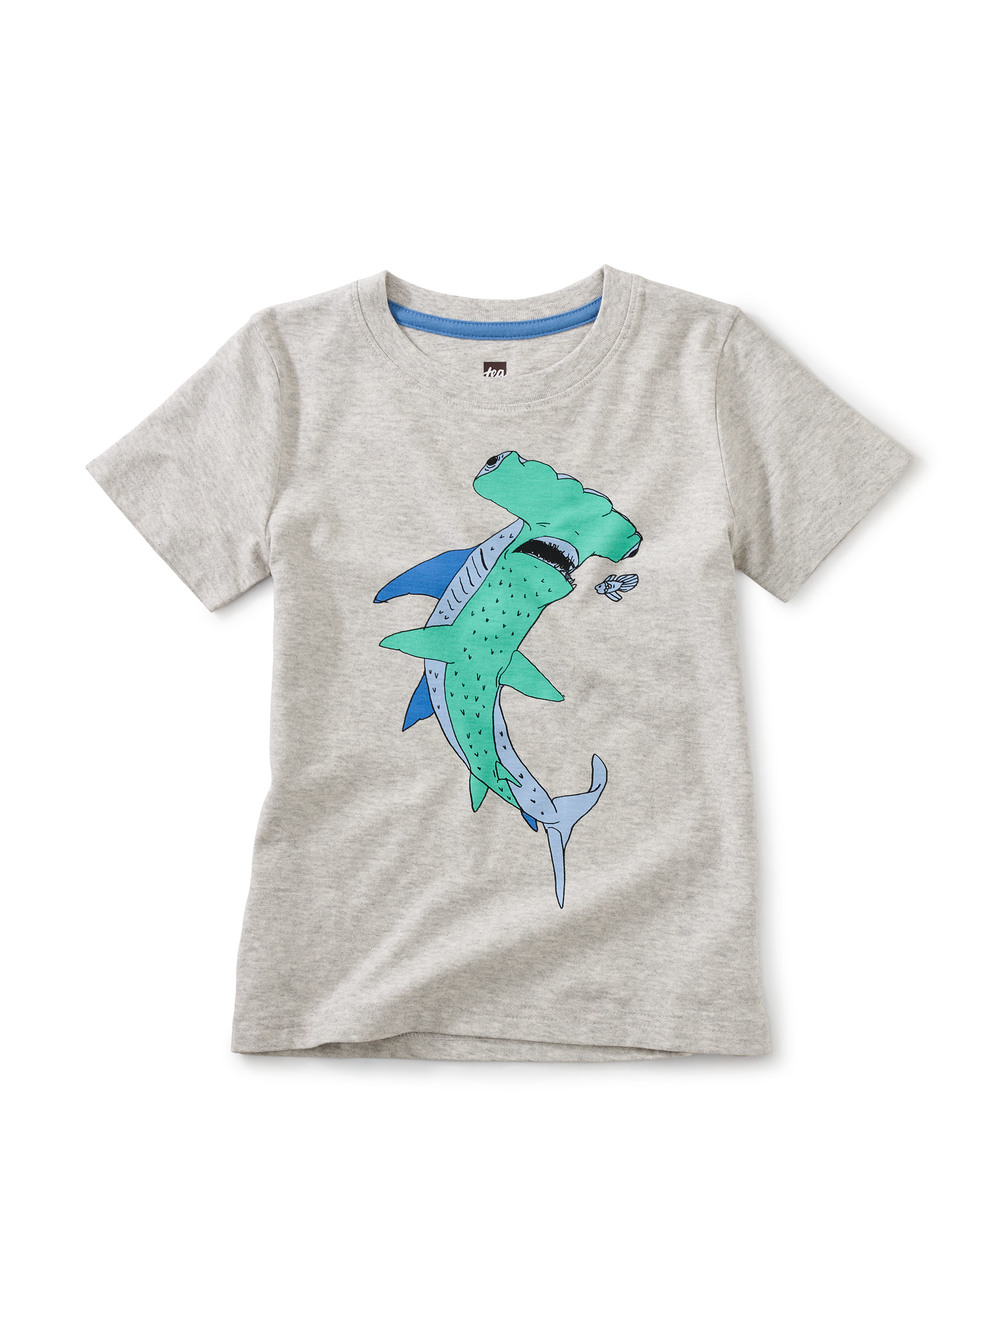 Happy Hammerhead Graphic Tee